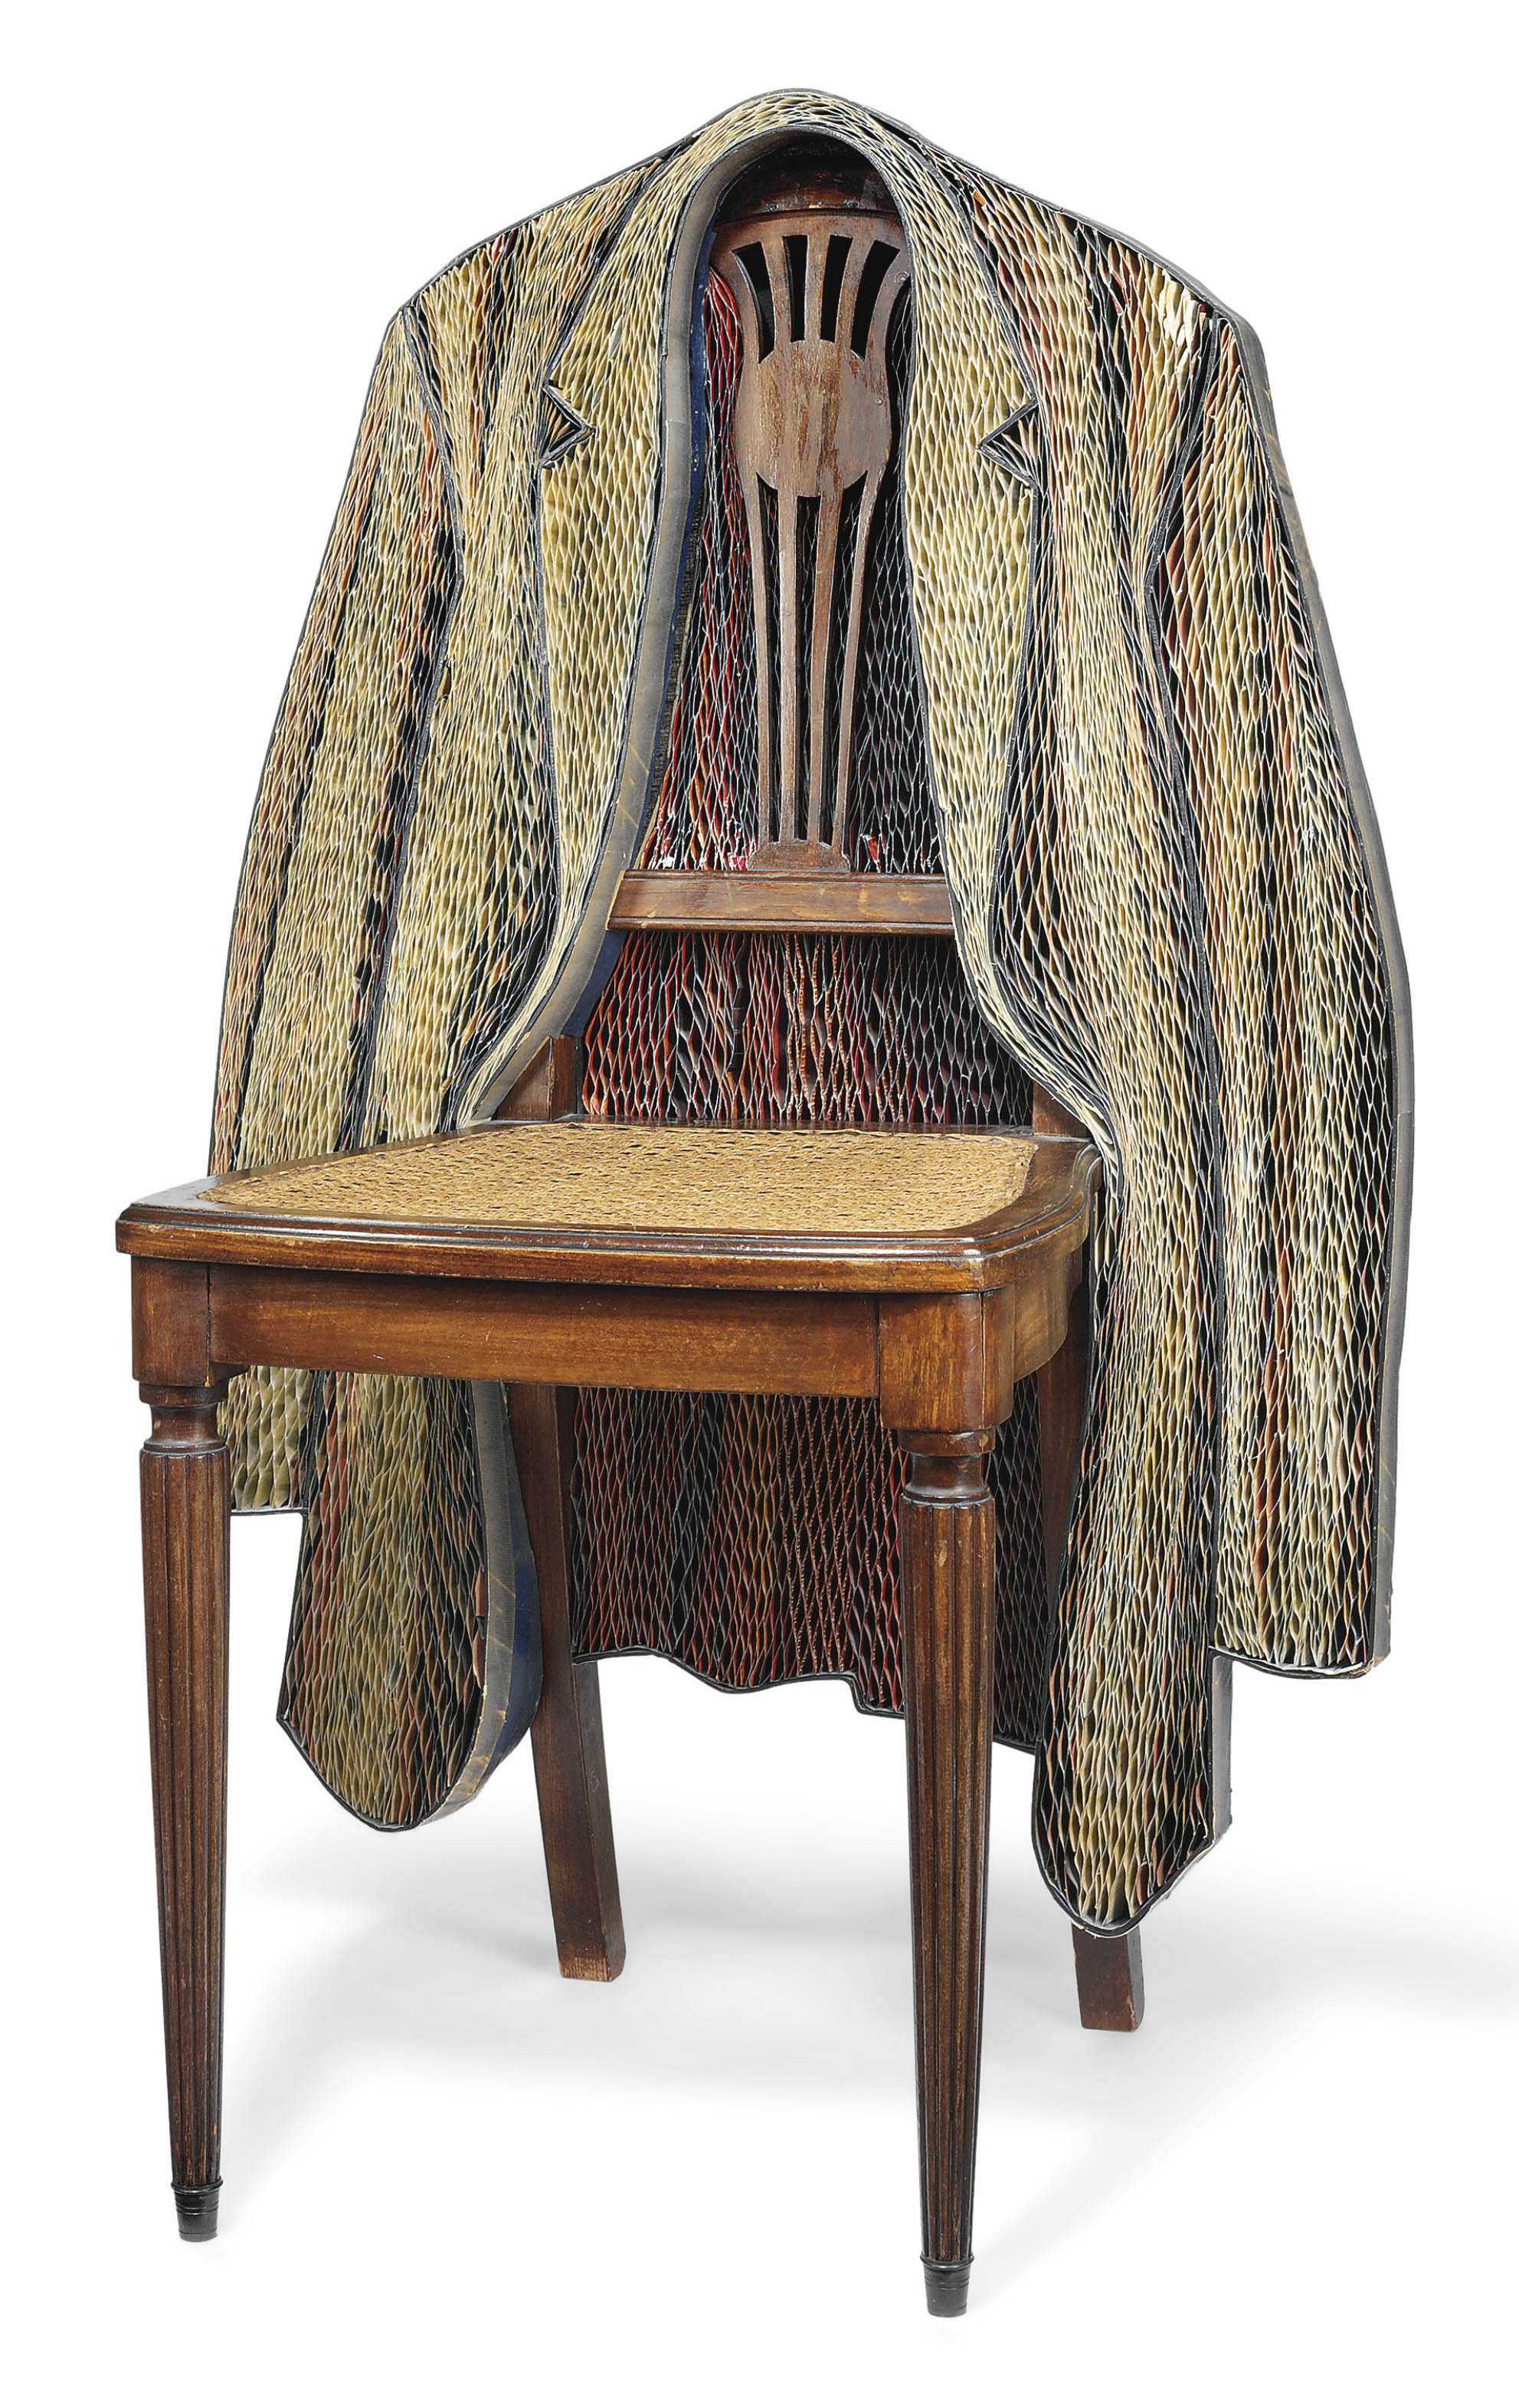 Jacket on the Back of a Chair